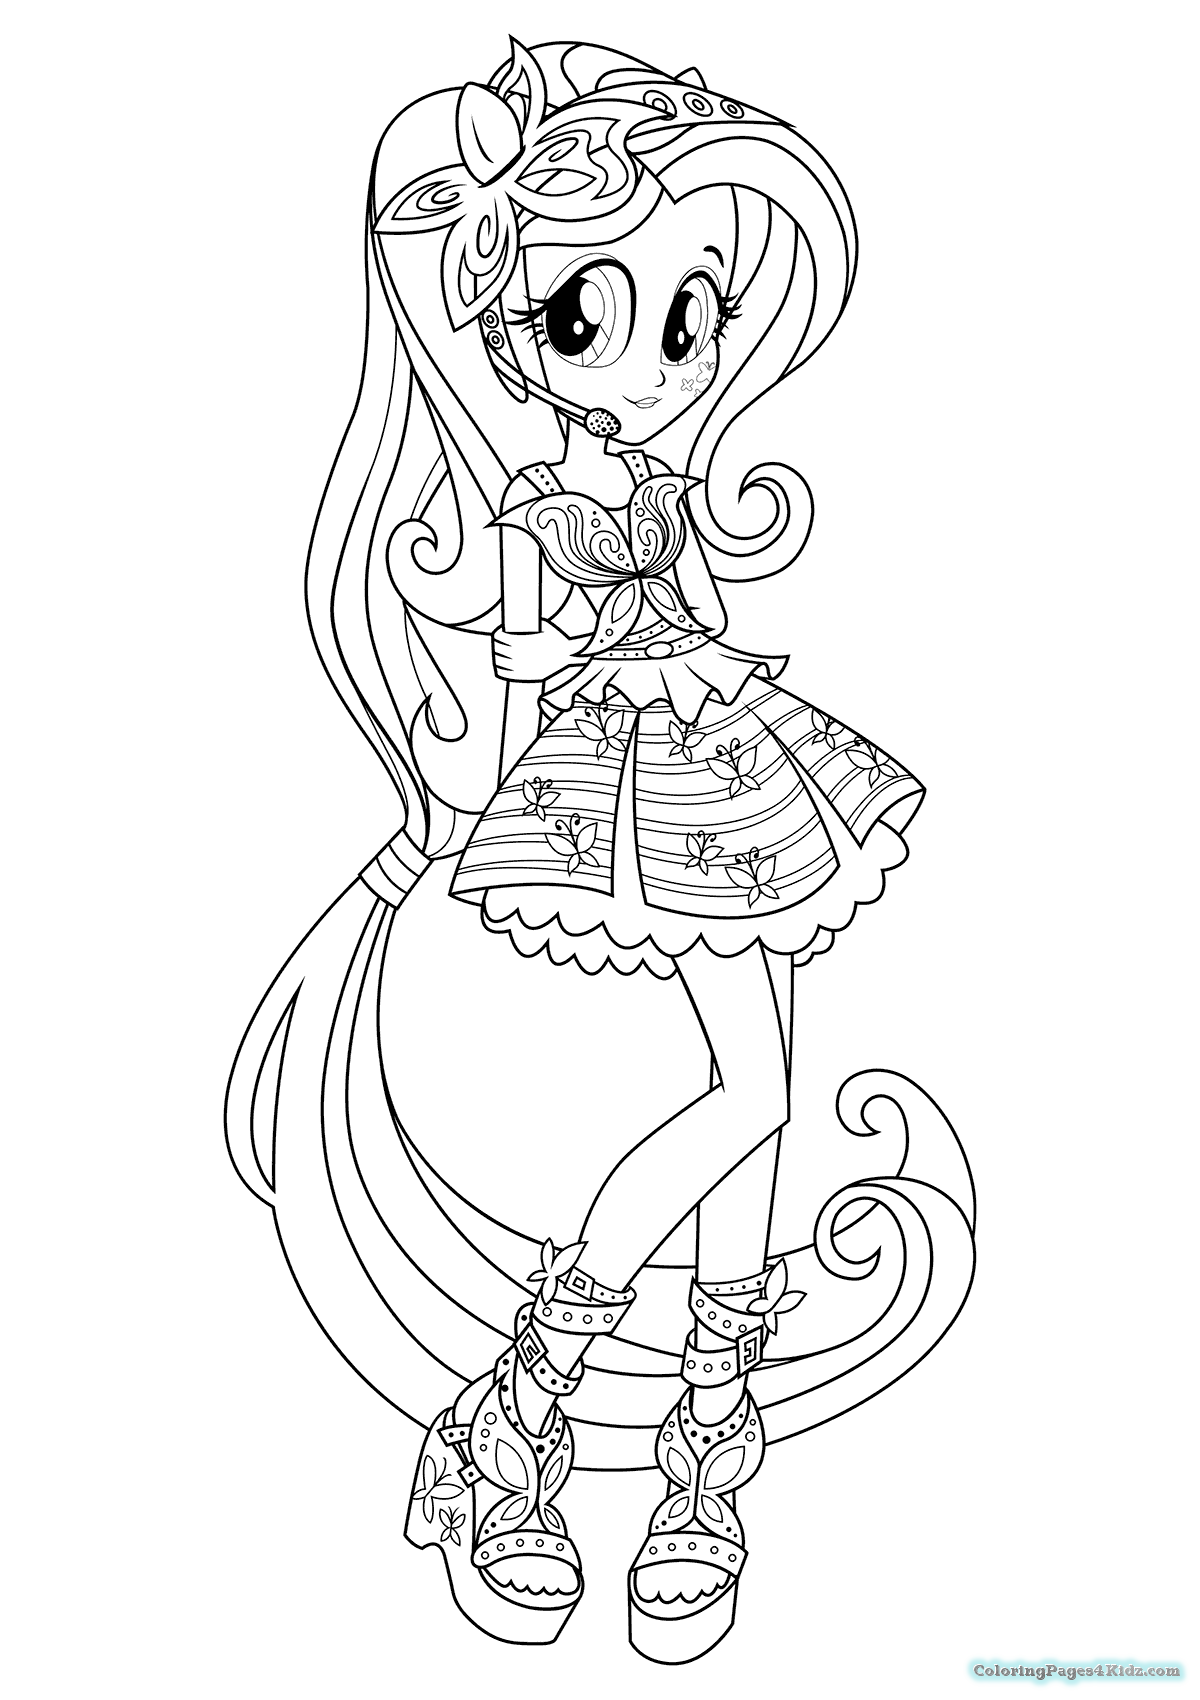 mlp eg coloring pages equestria girl pinkie pie lineart by darkengales on deviantart eg pages mlp coloring